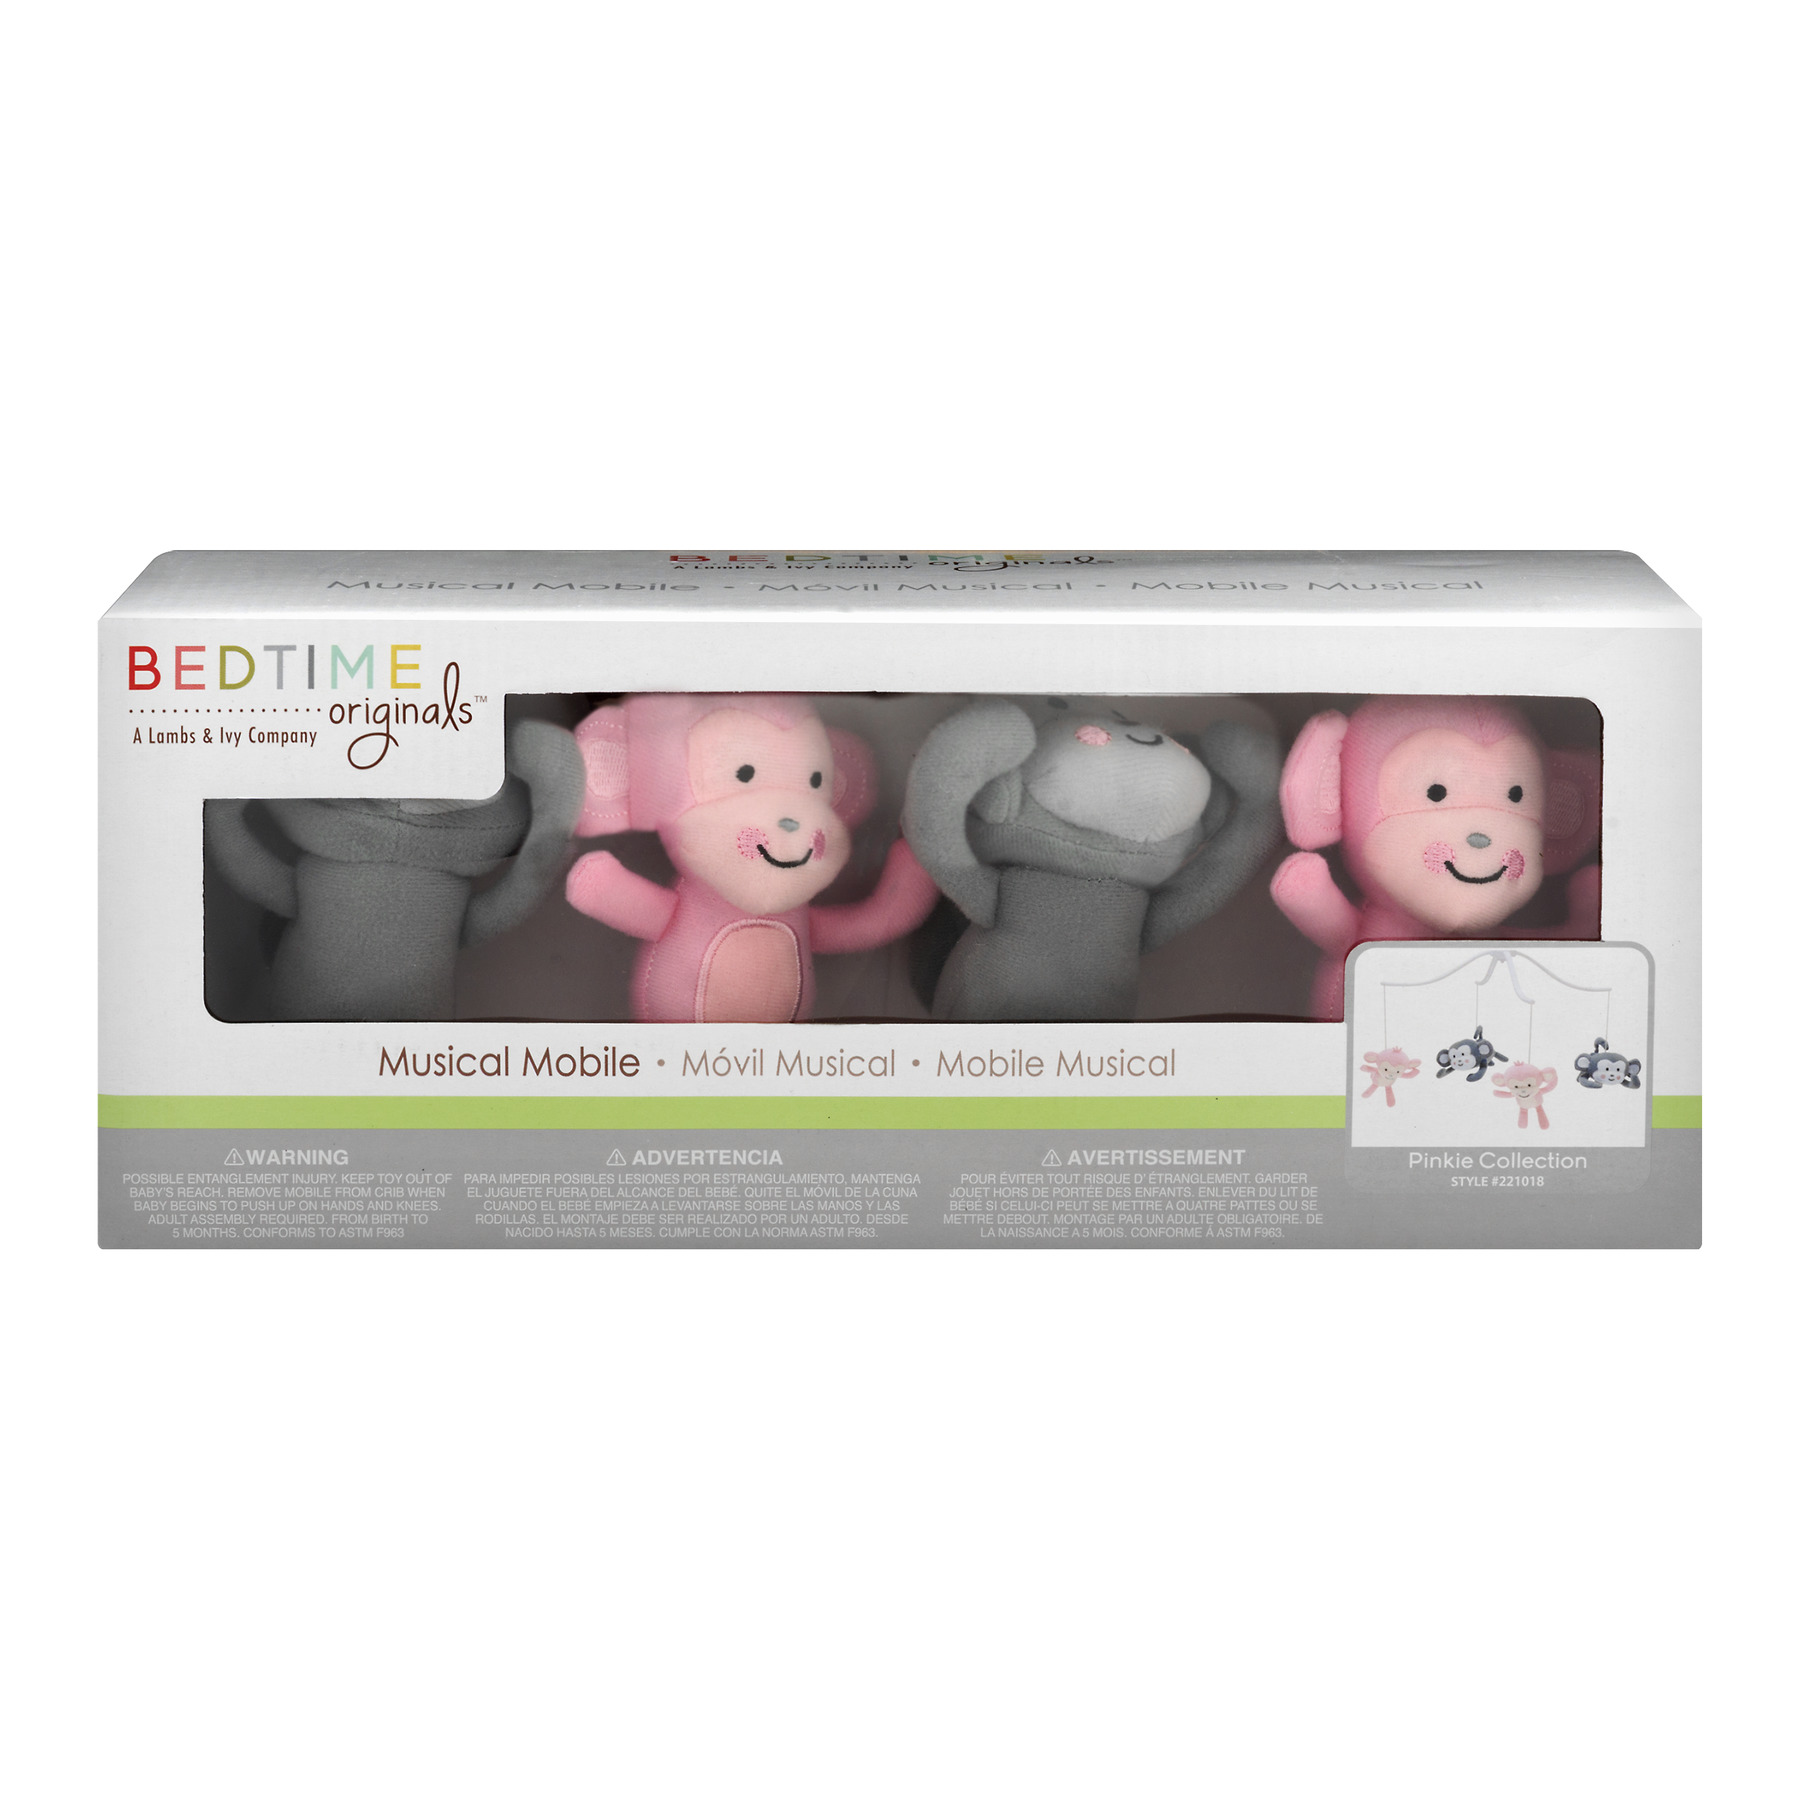 Bedtime Originals Pinkie Collection Musical Mobile by Bedtime Originals